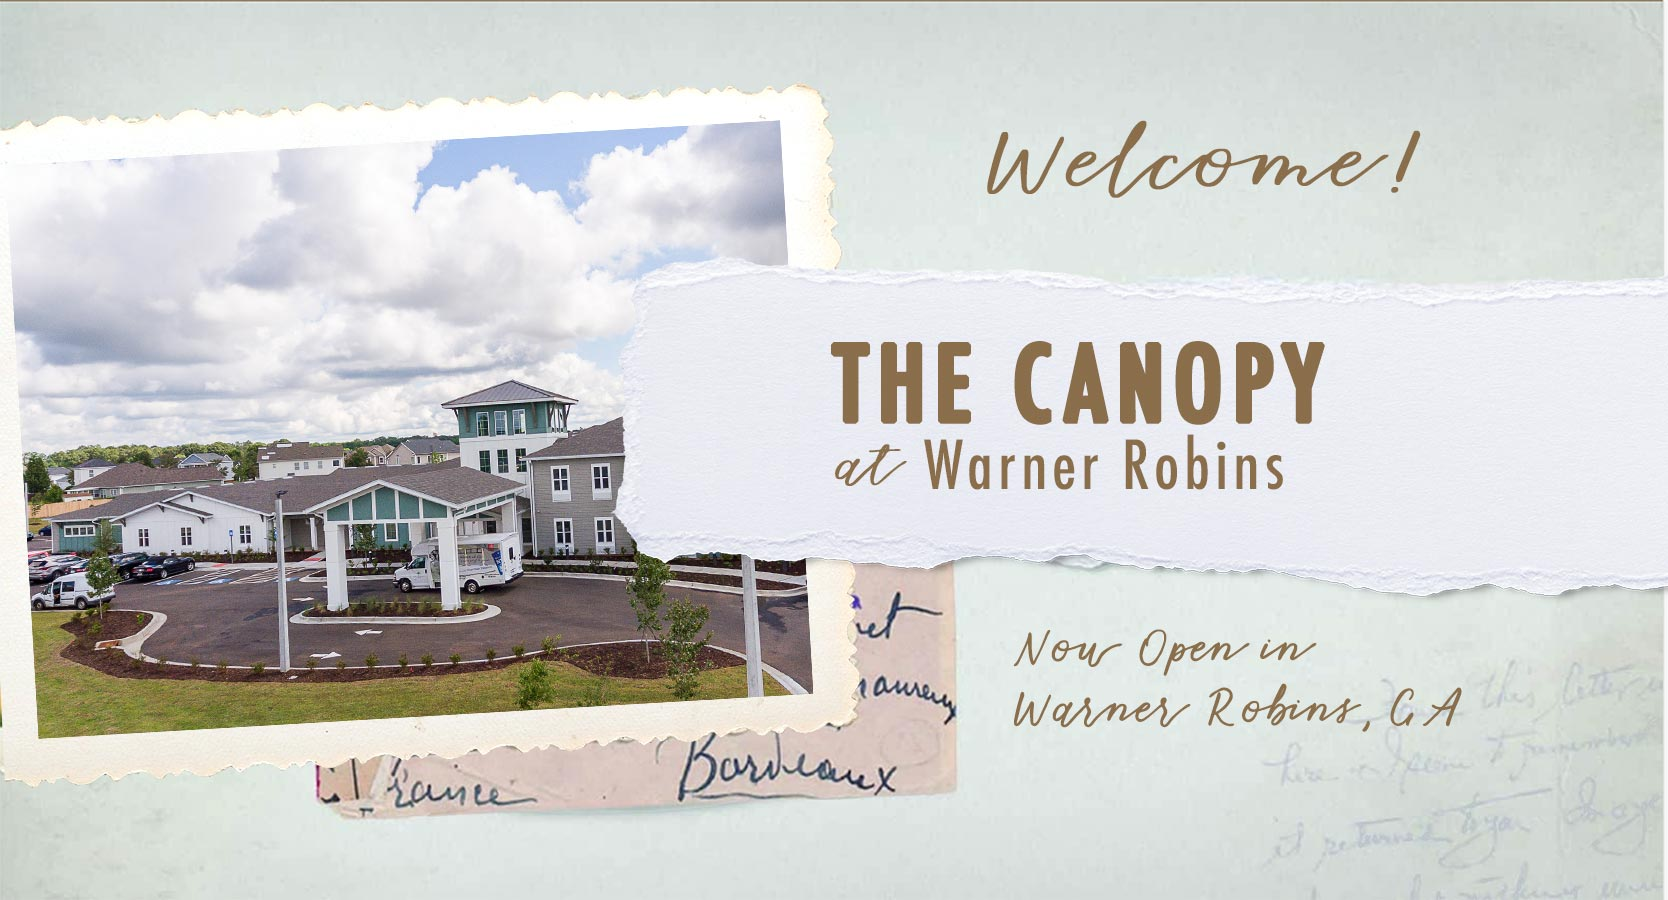 Welcome to The Canopy at Warner Robins and assisted living and memory care community in Warner Robins, GA. We are Now Open!